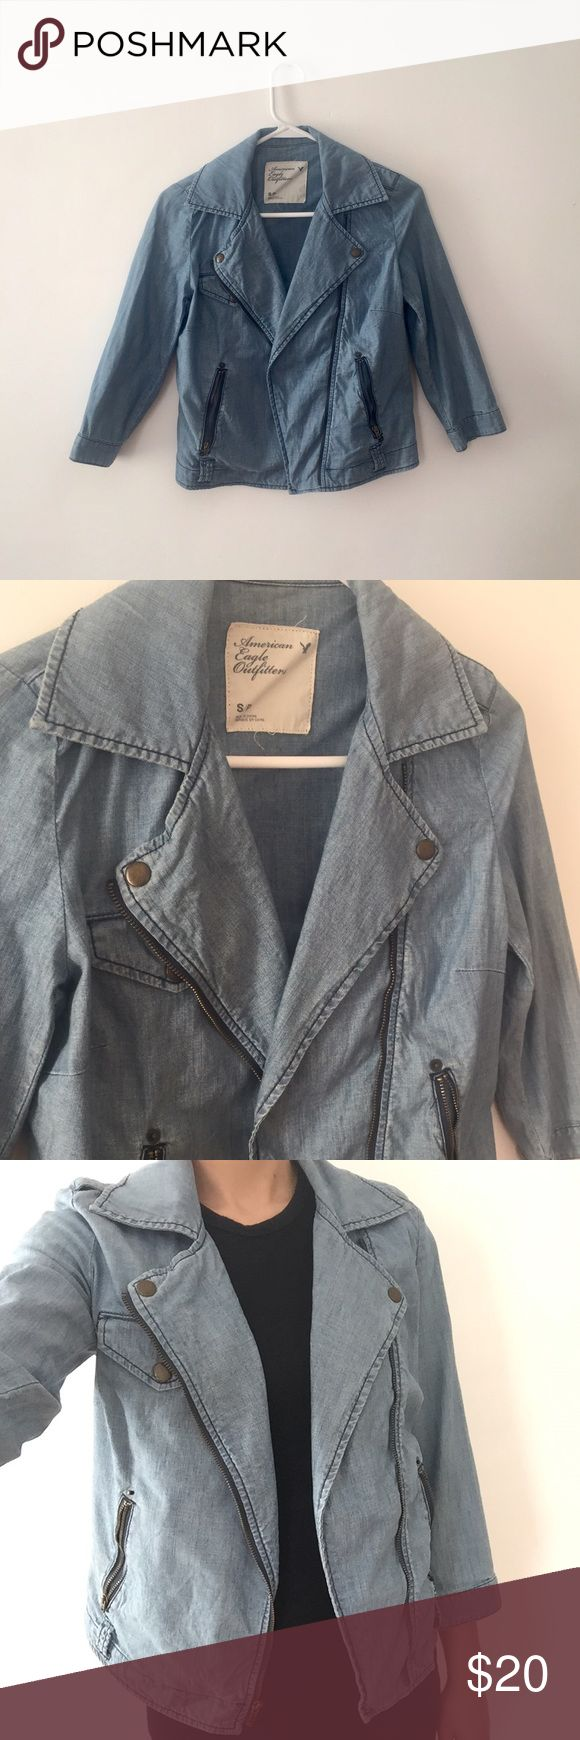 American Eagle Denim Jacket Great condition. Has snap buttons and zipper in front with pockets. American Eagle Outfitters Jackets & Coats Jean Jackets